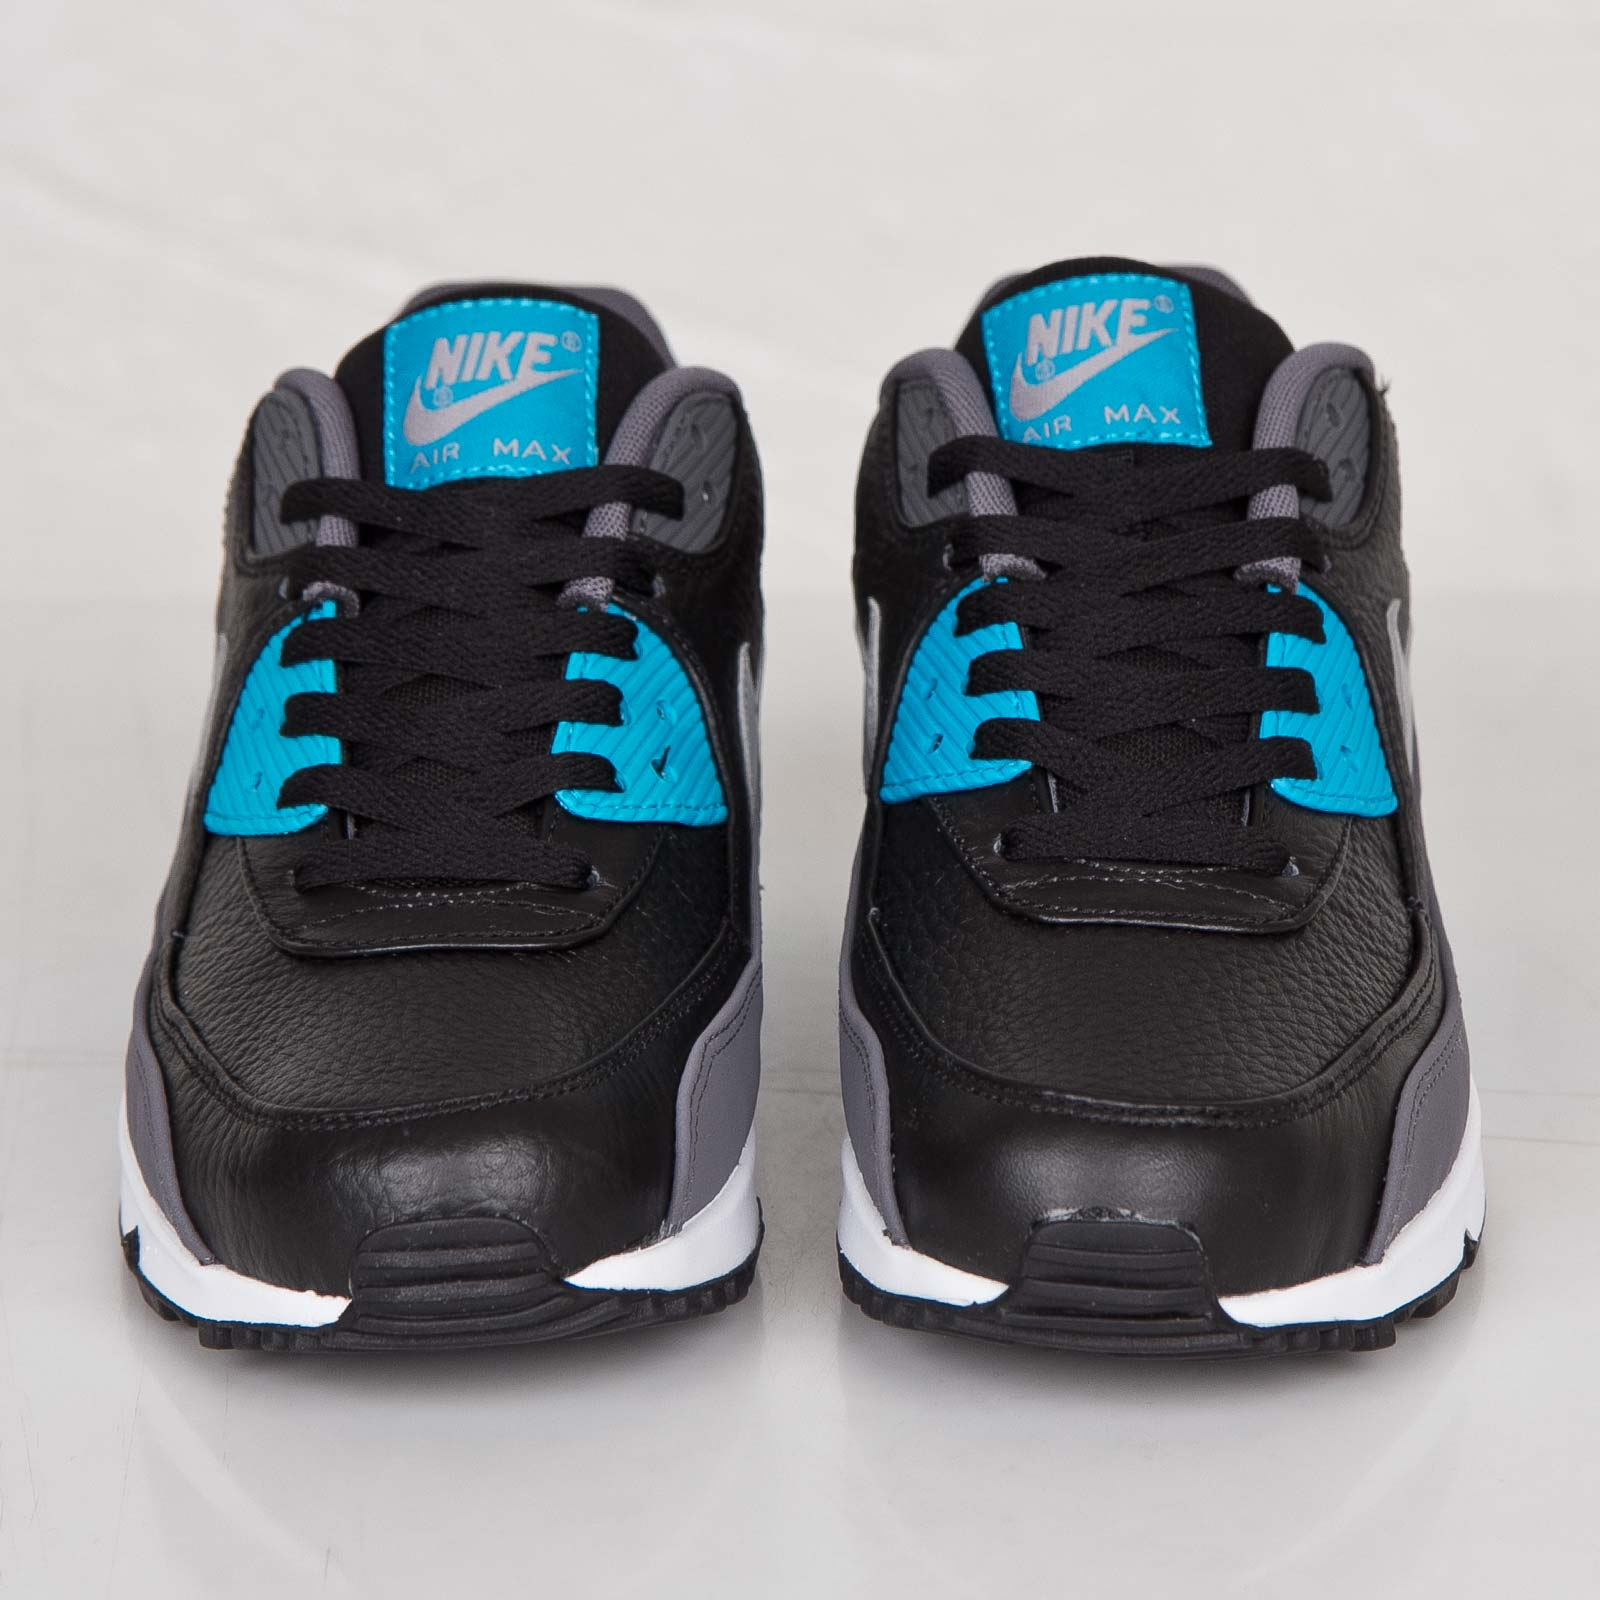 Nike Air Max 90 Leather 652980 004 Sneakersnstuff